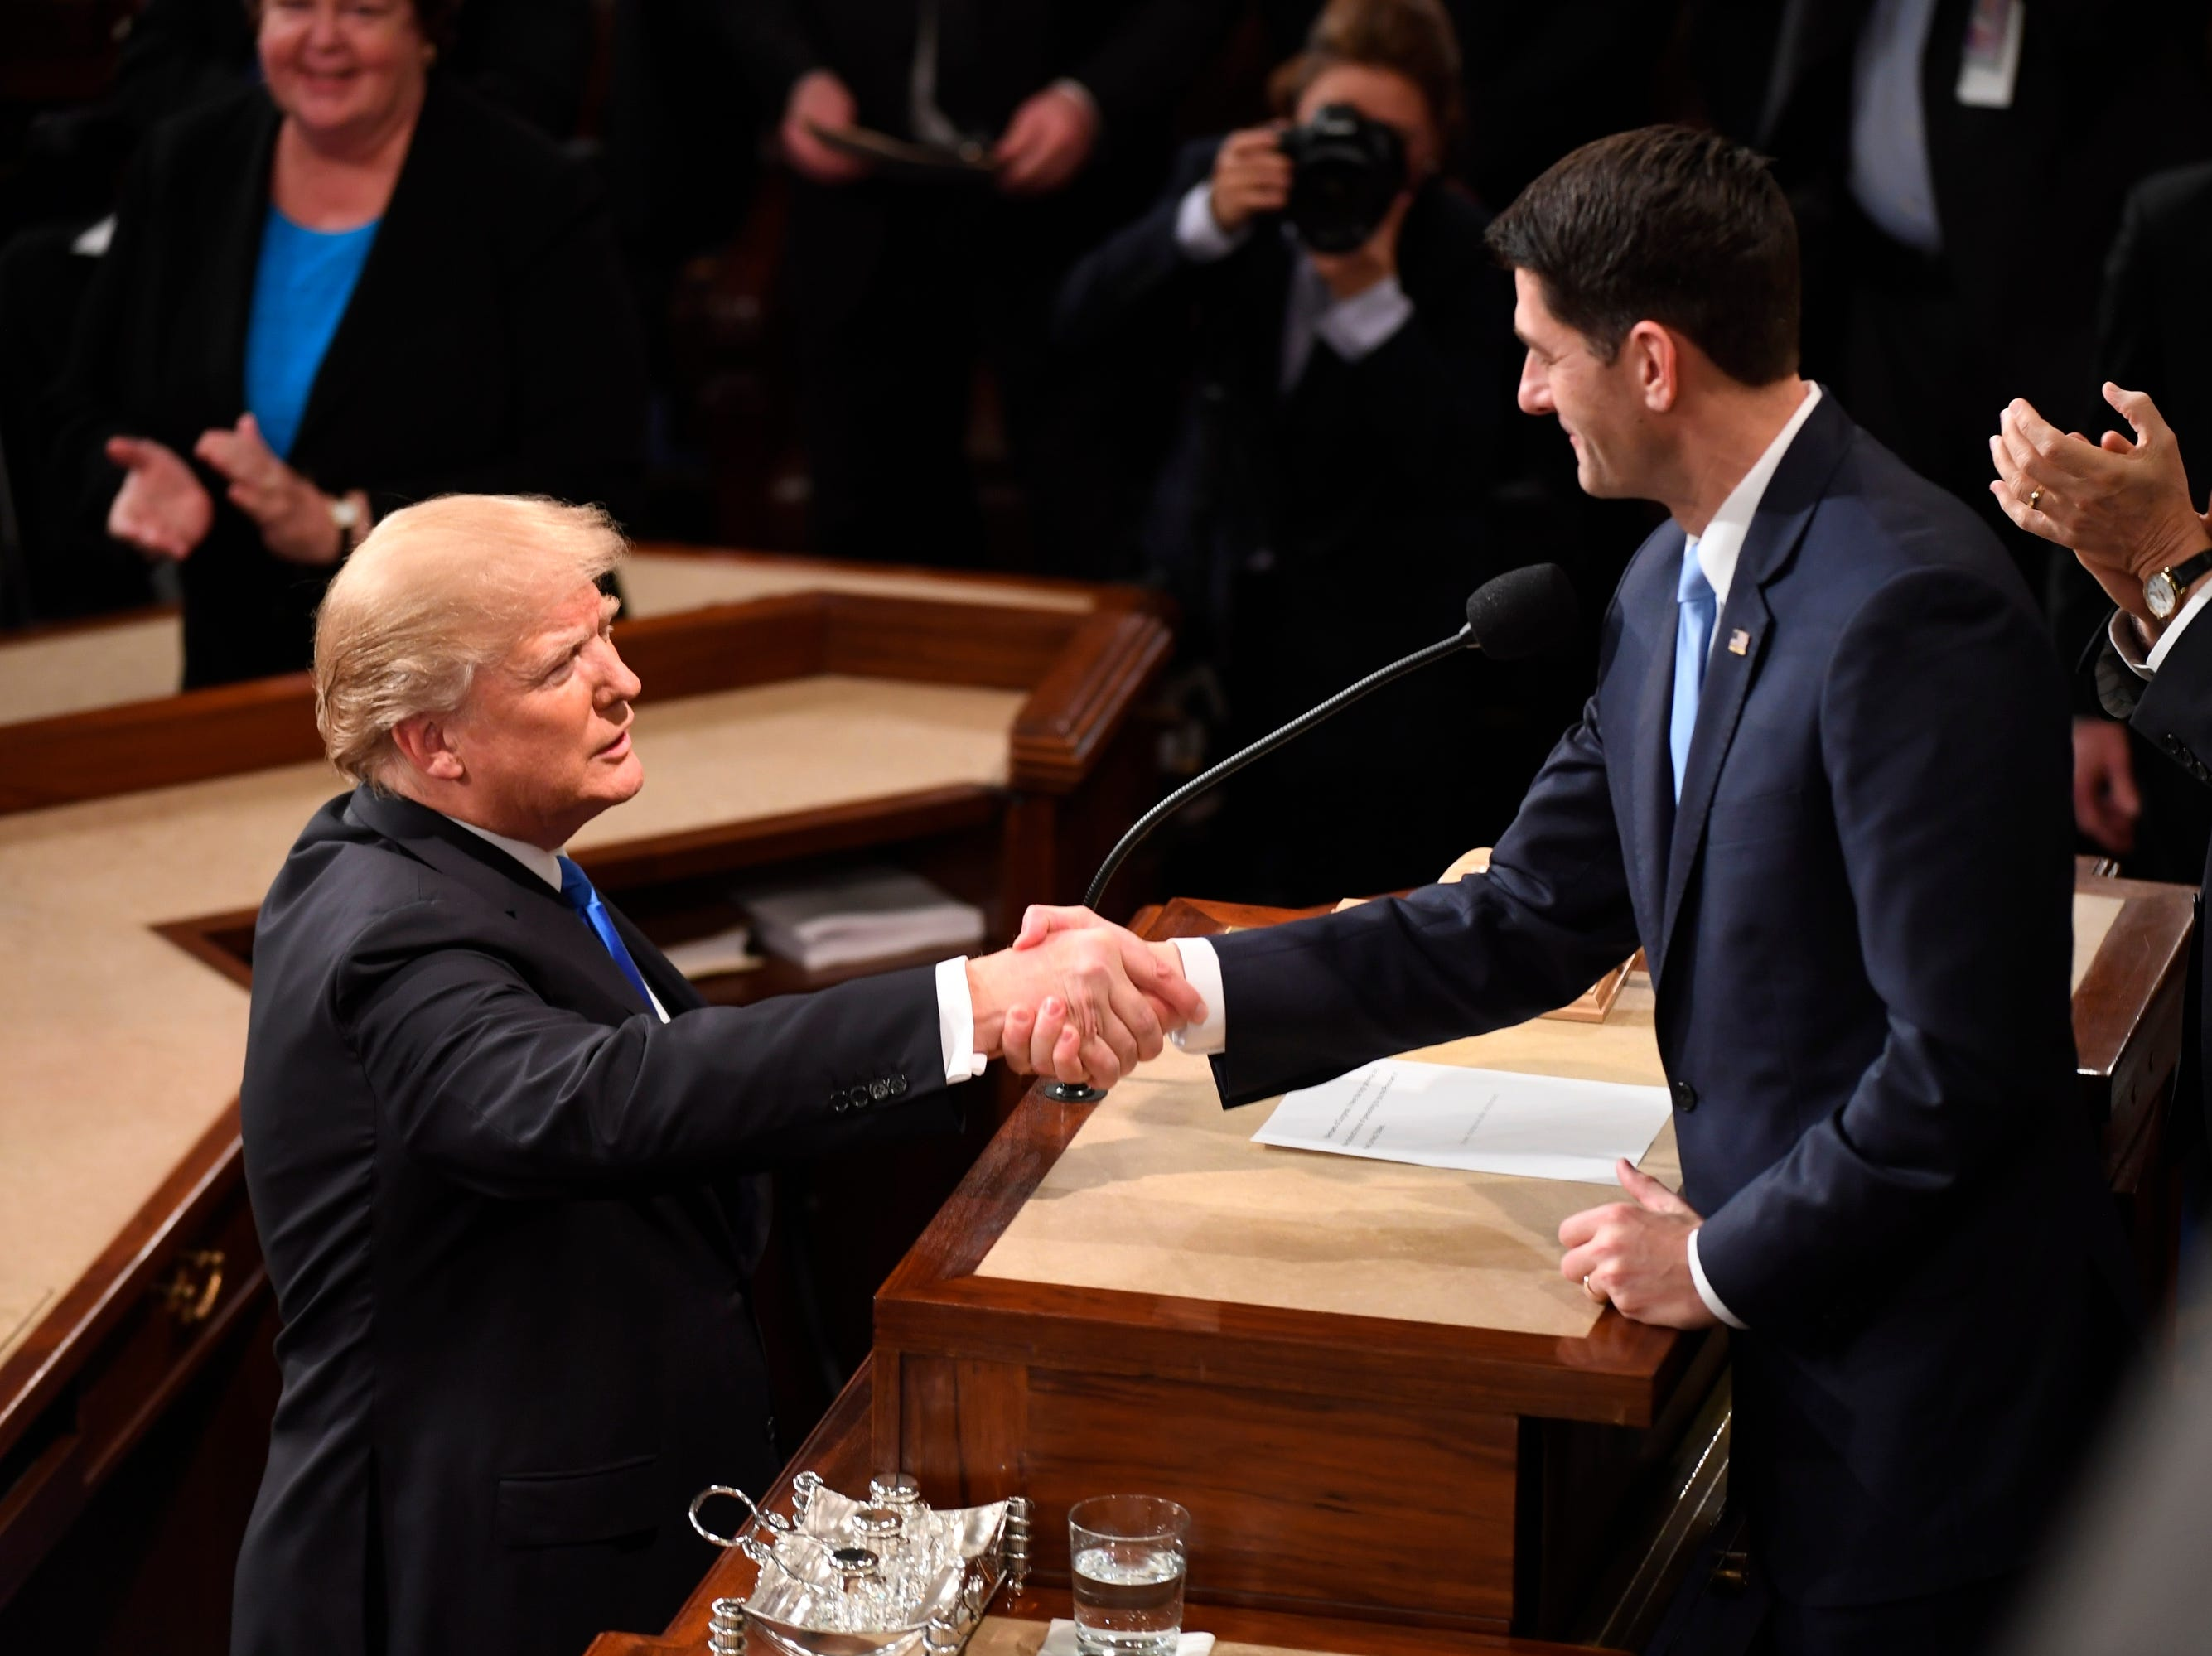 President Donald Trump greets House Speaker Paul Ryan before delivering the State of the Union address on Tuesday, Jan. 30, 2018 from the House chamber of the United States Capitol in Washington.